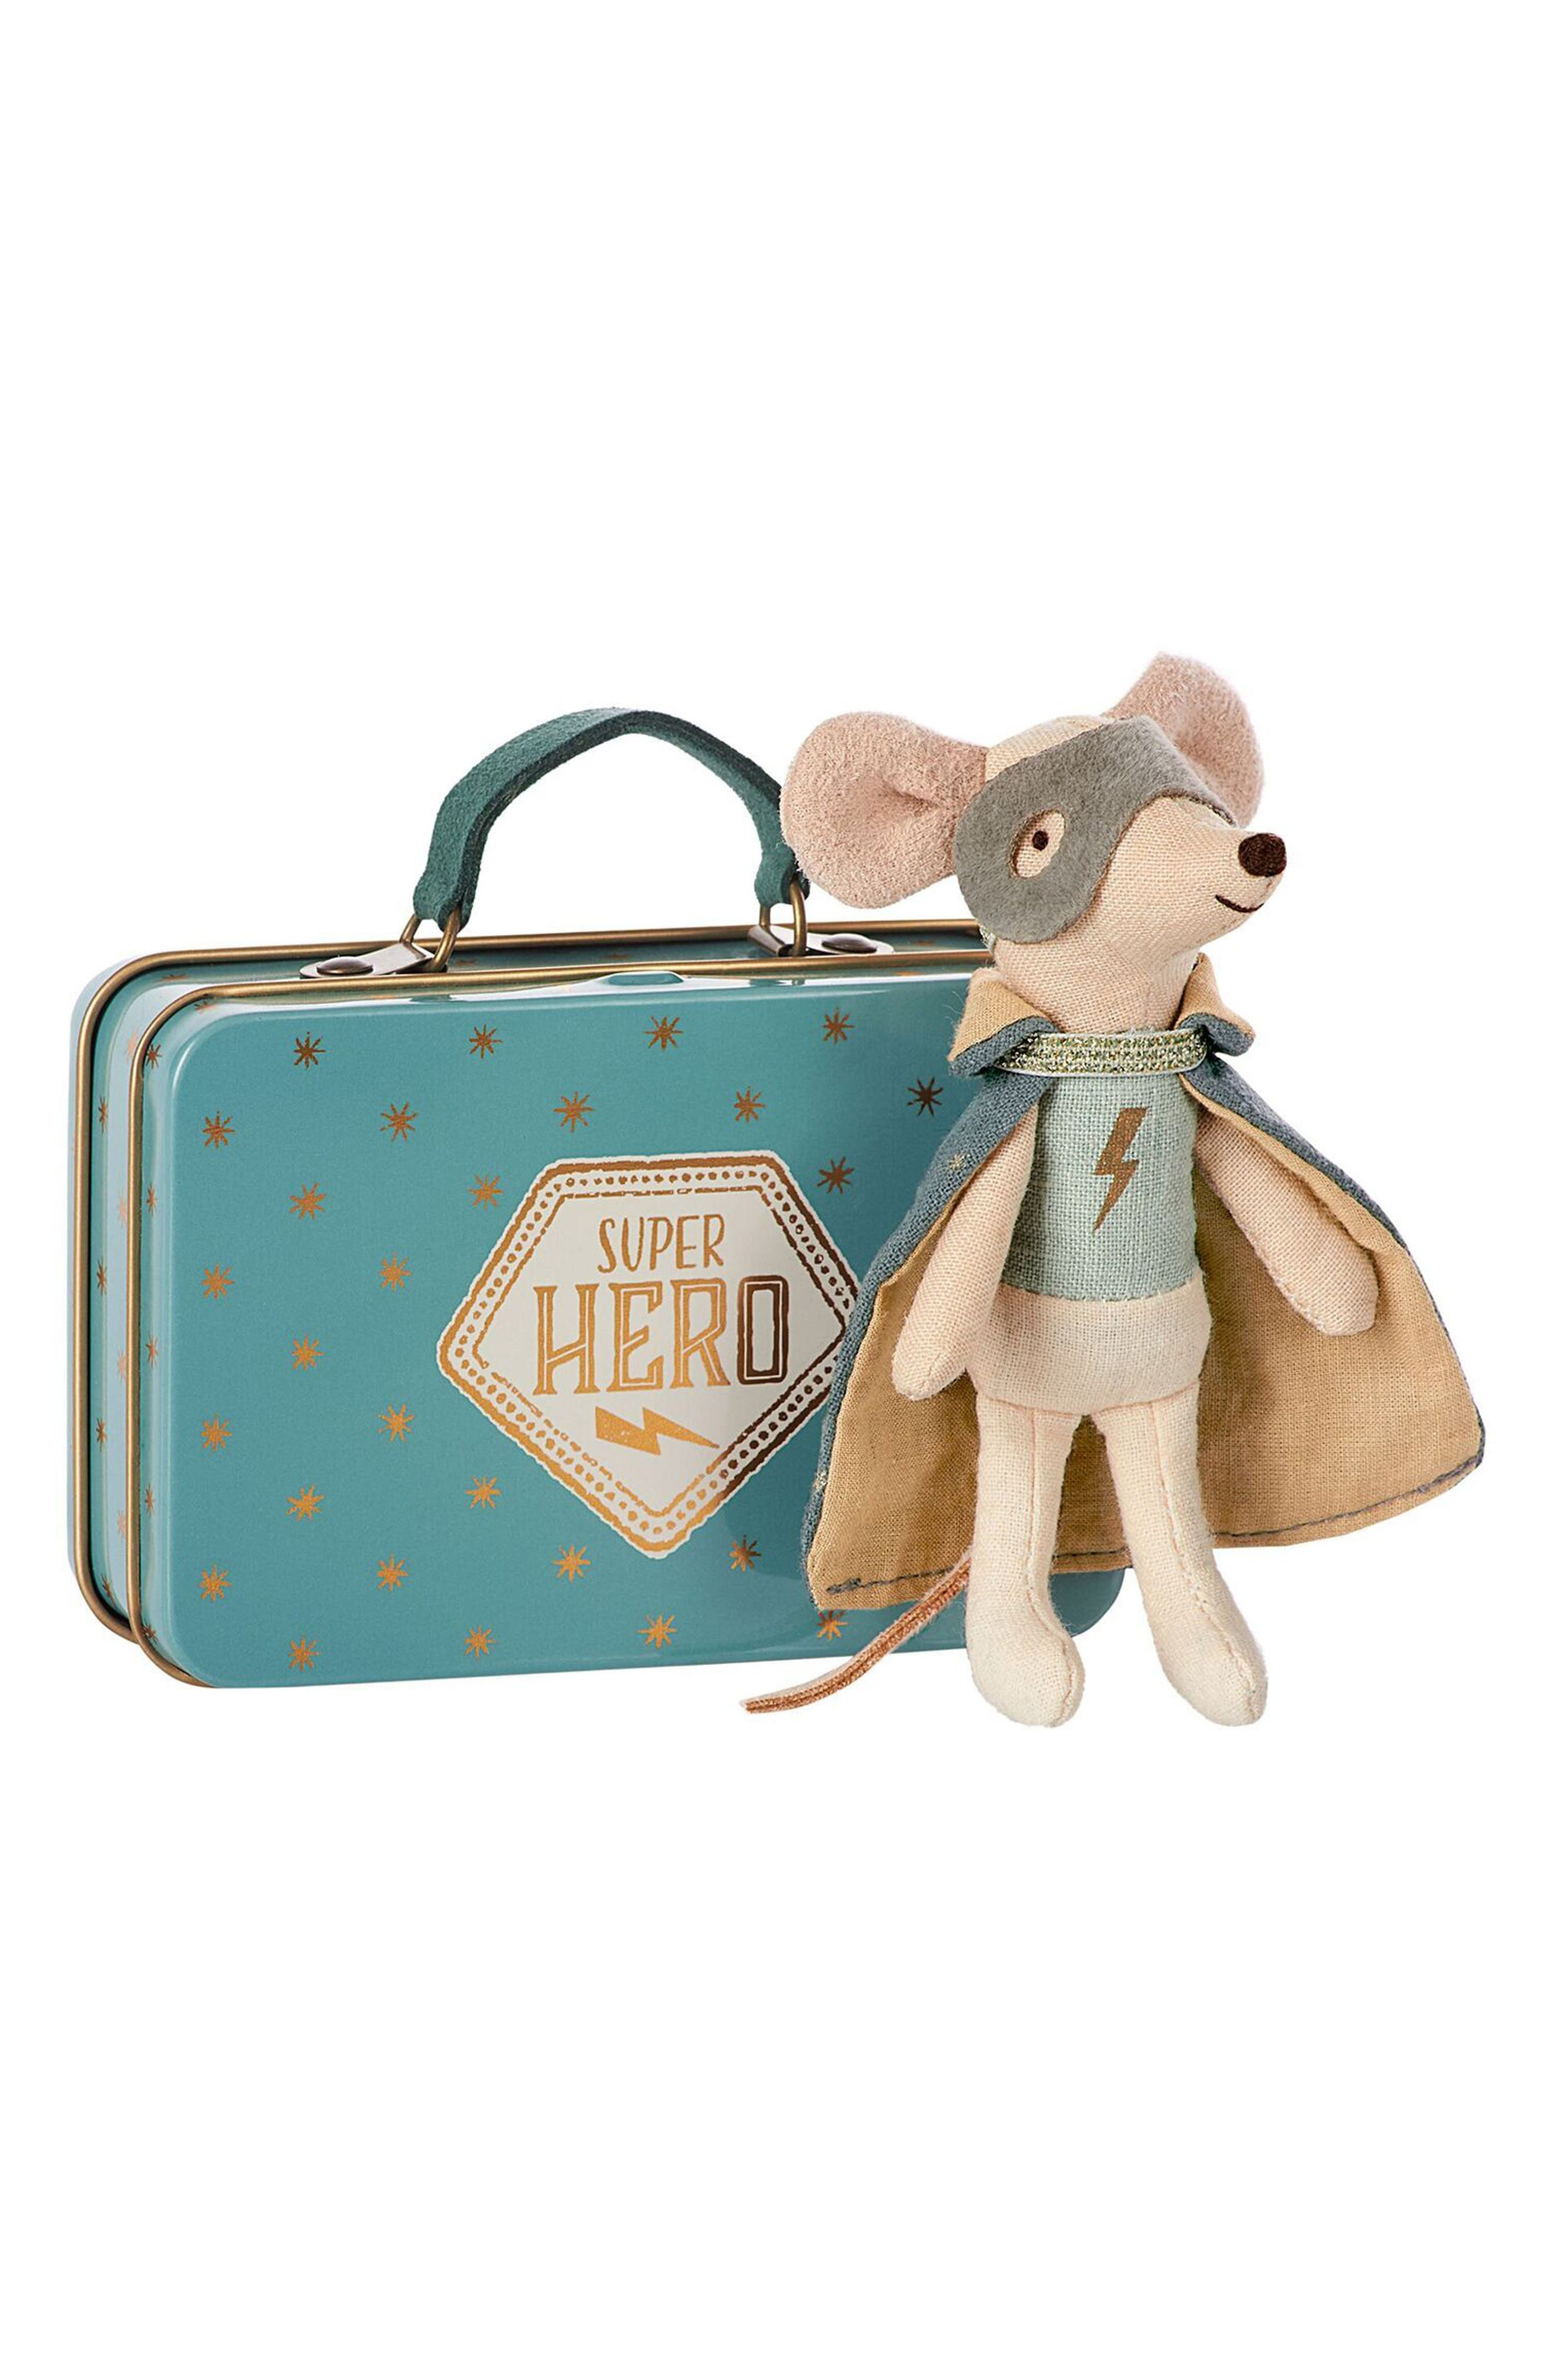 Main Image - Maileg Super Hero Toy Mouse in a Suitcase